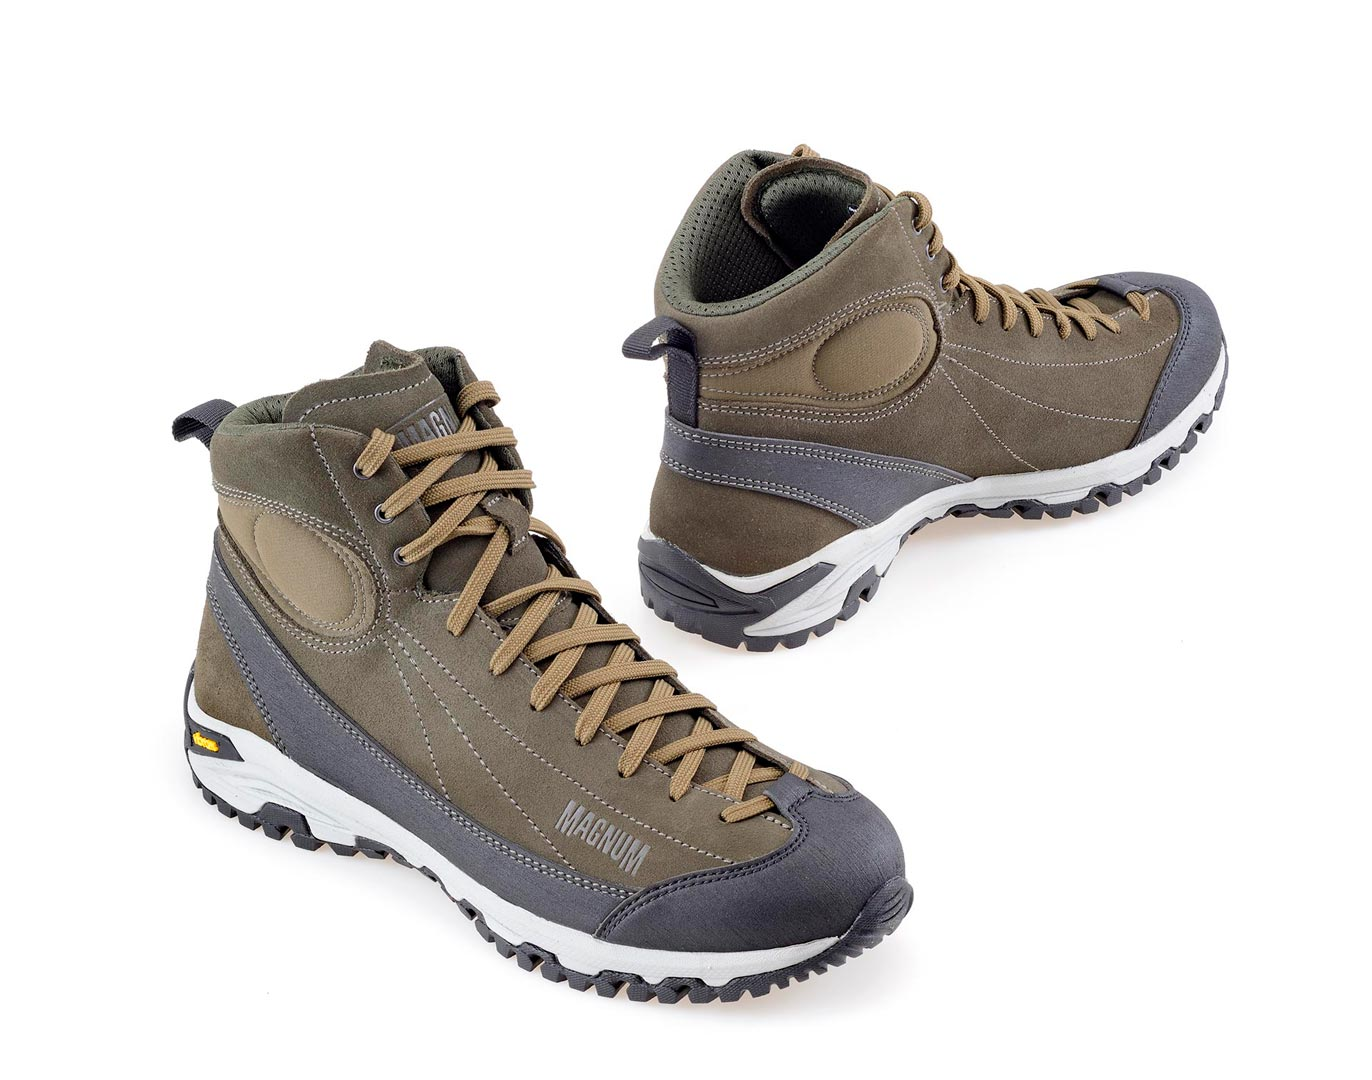 DEFCON 5 APPROACH TACTICAL 5 MID HEIGHT BY MAGNUM OD GREEN